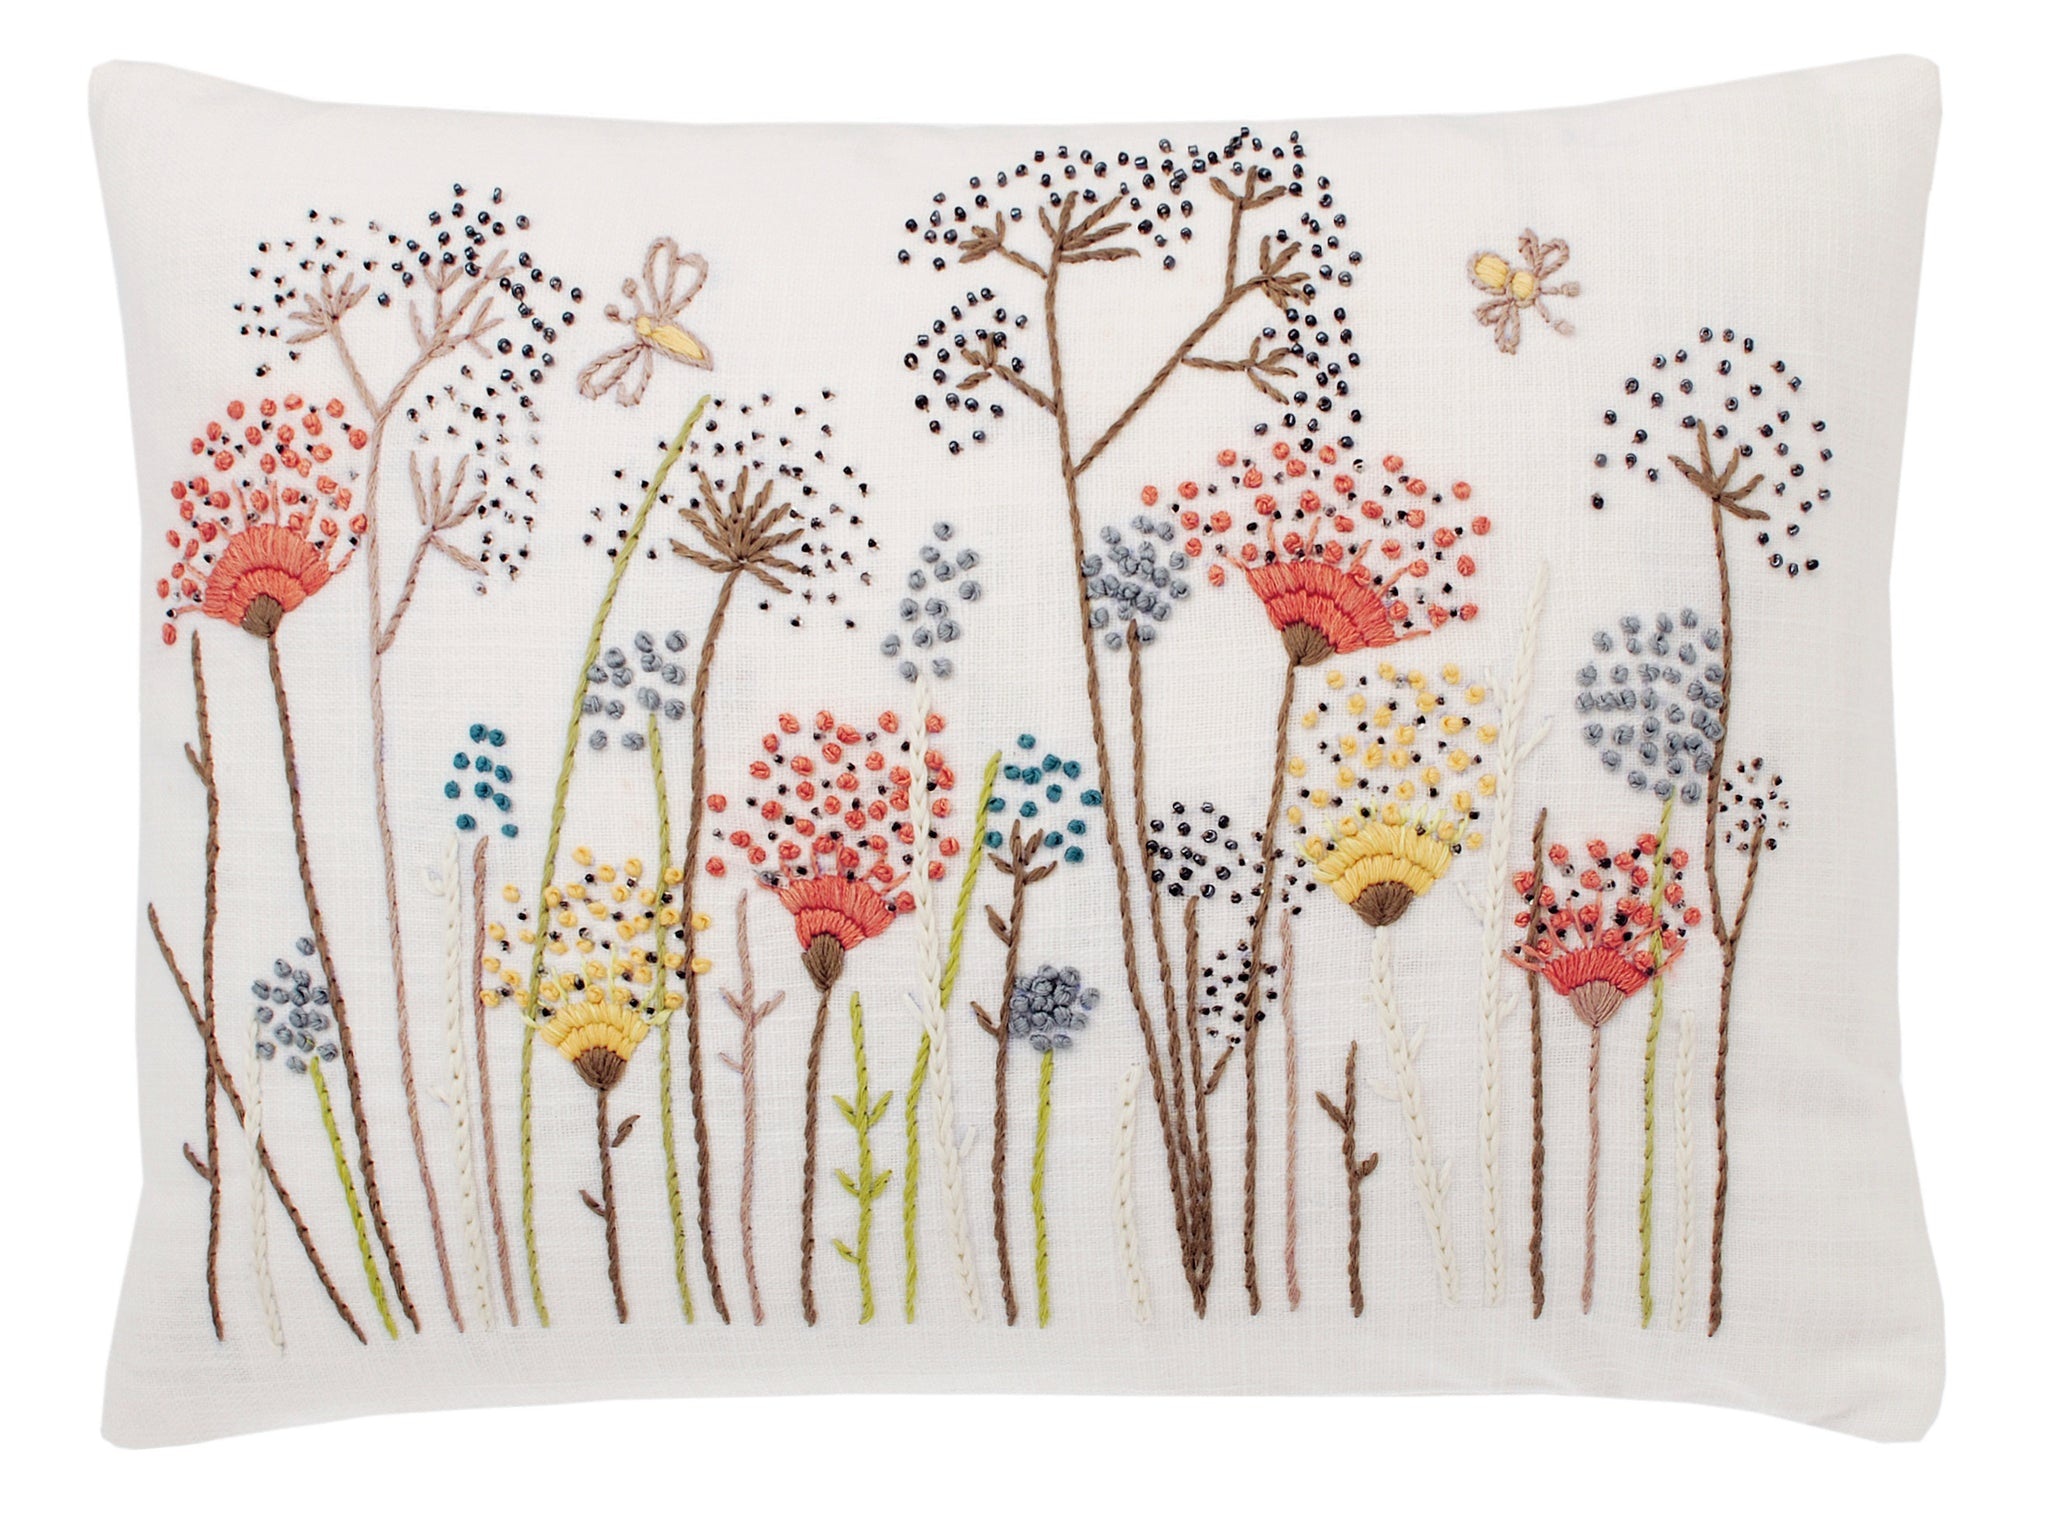 Cushion - Scrapbook Meadow Blooms